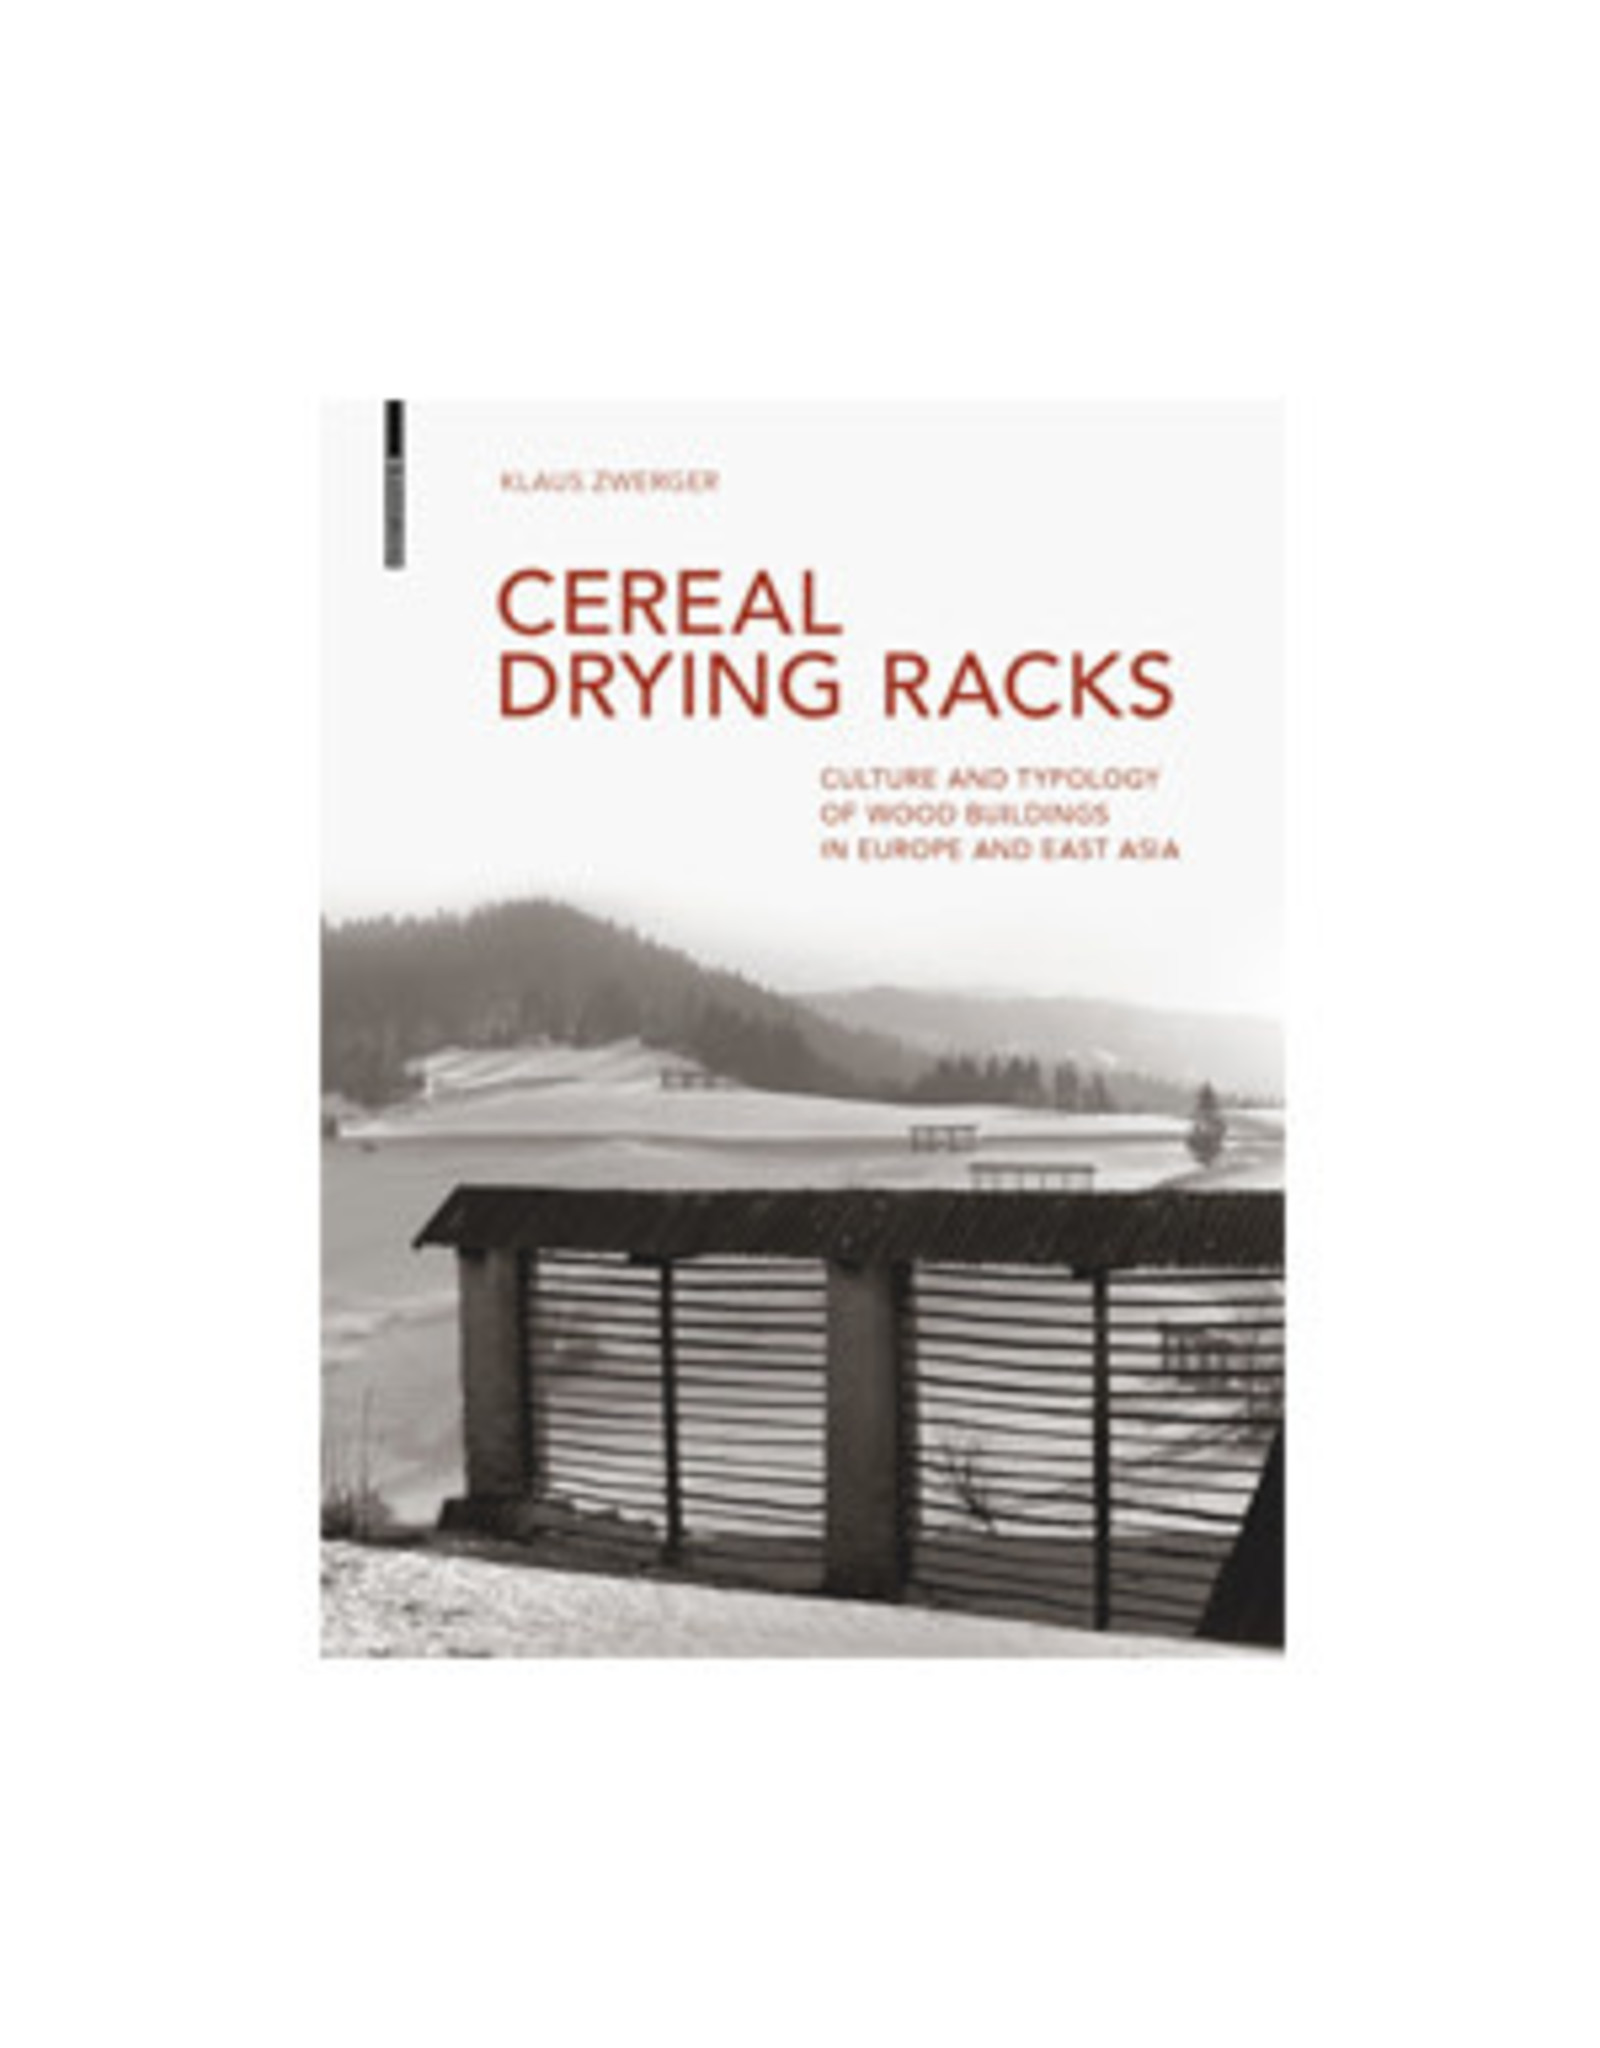 Cereal Drying Racks: Culture and Typology of Wood Buildings in Europe and East Asia